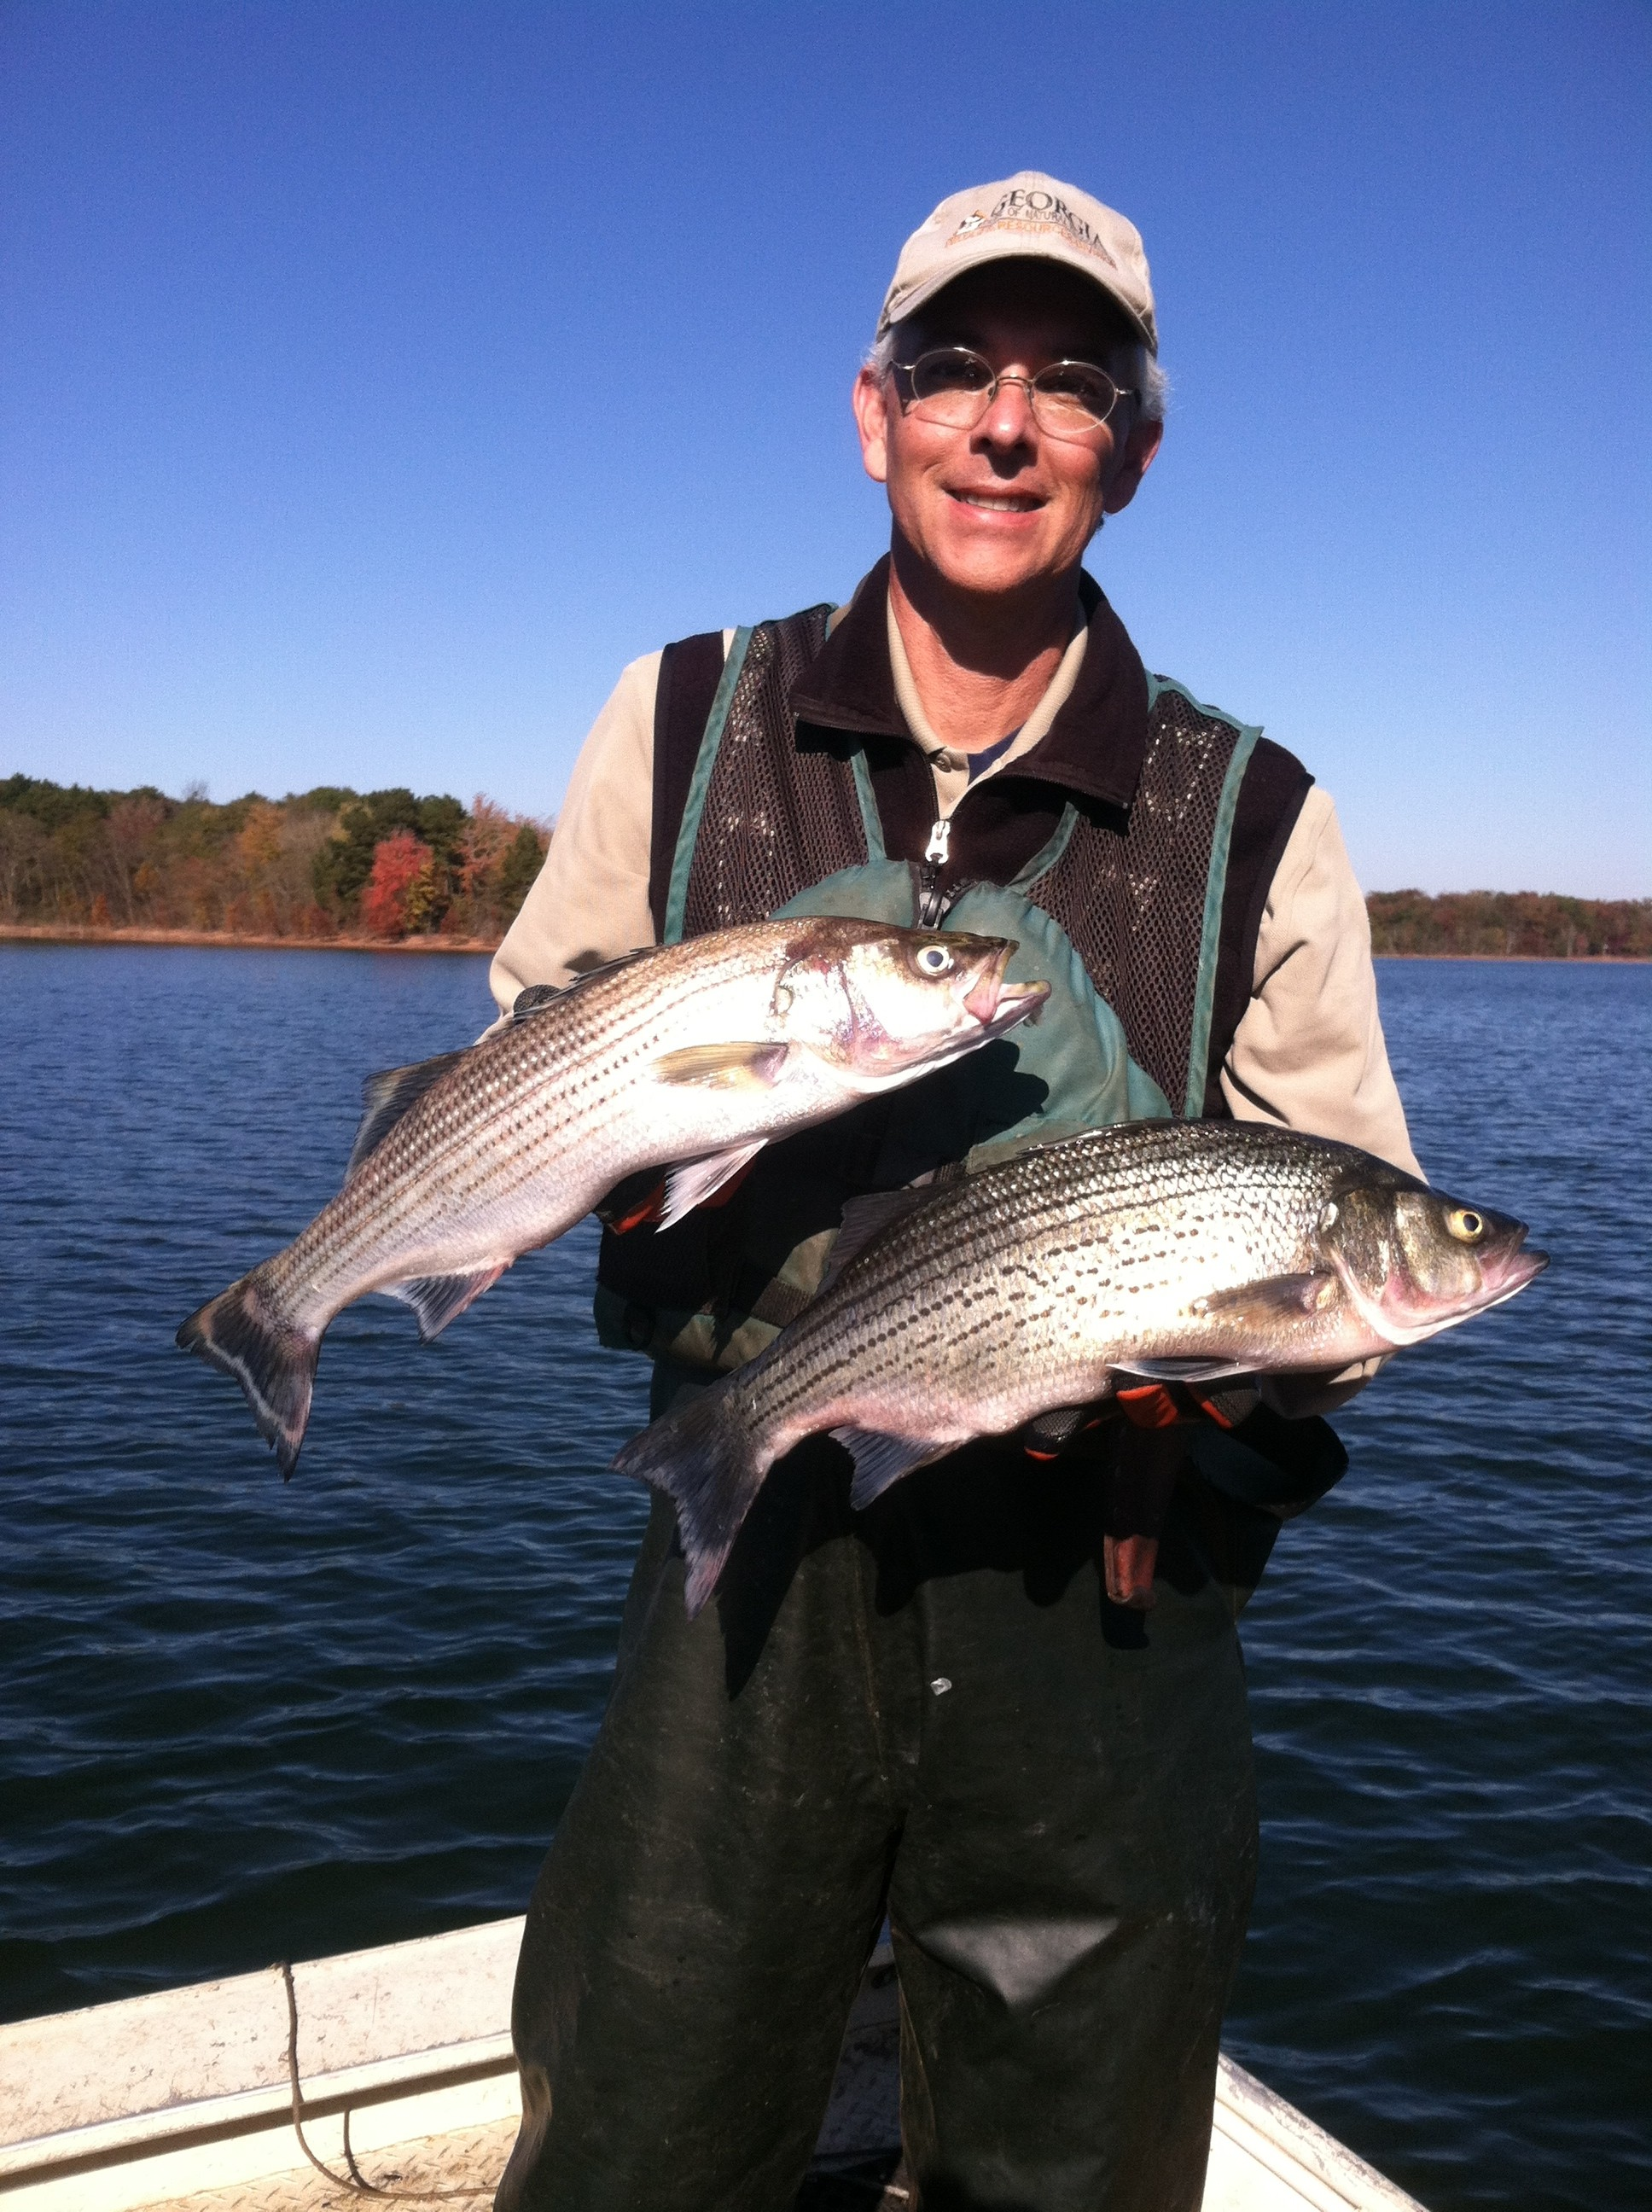 Lake hartwell georgia wildlife resources division for Lake hartwell striper fishing report